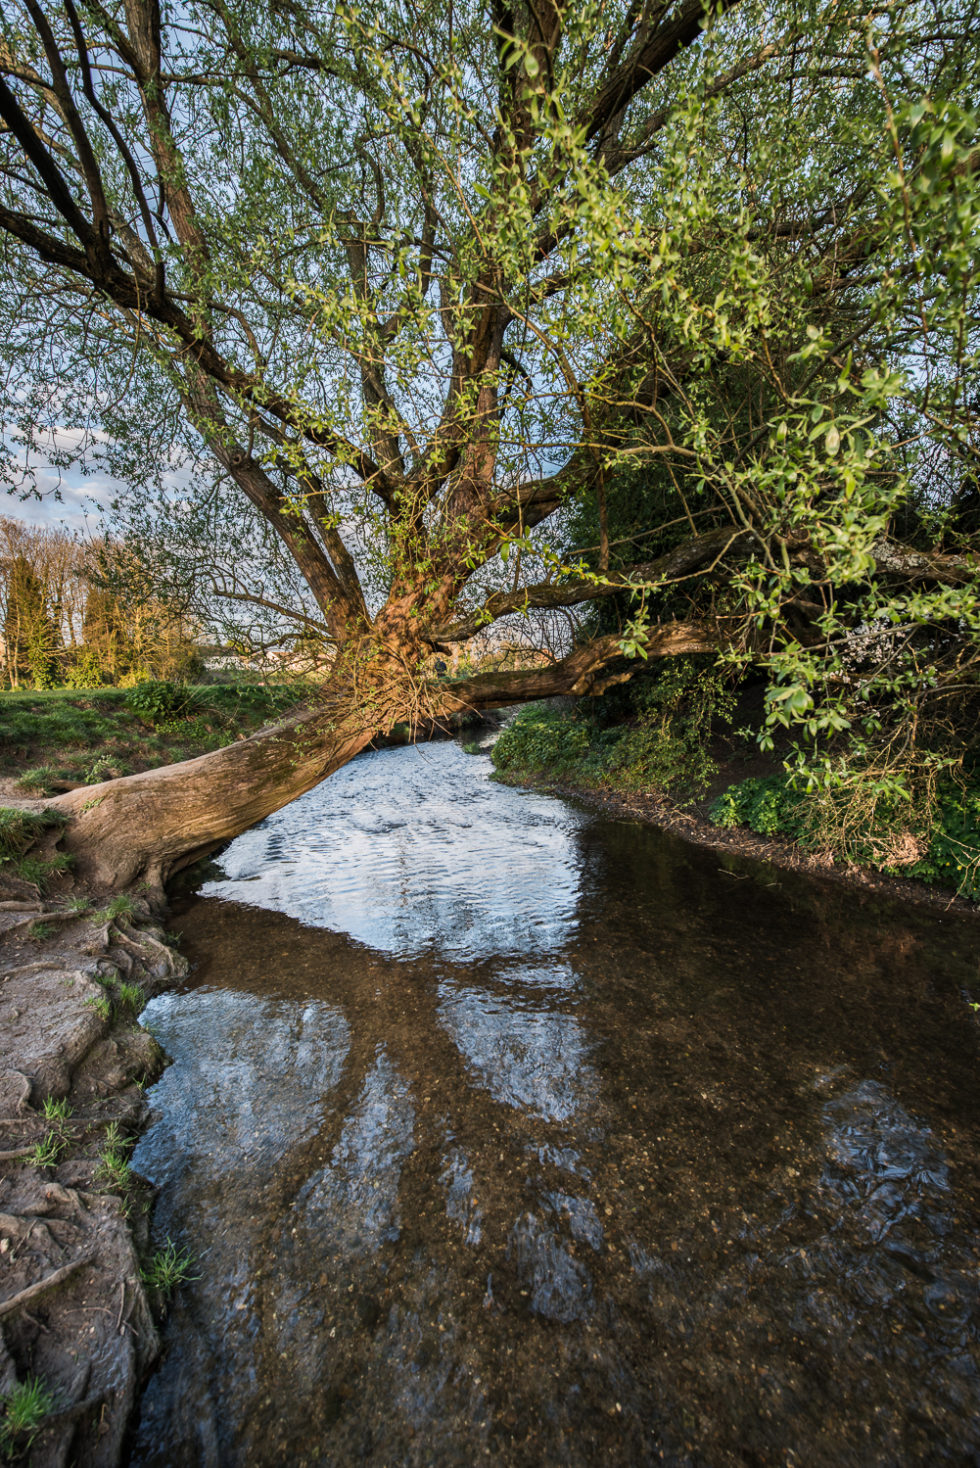 214-365v3 Tree over the River Chelmer